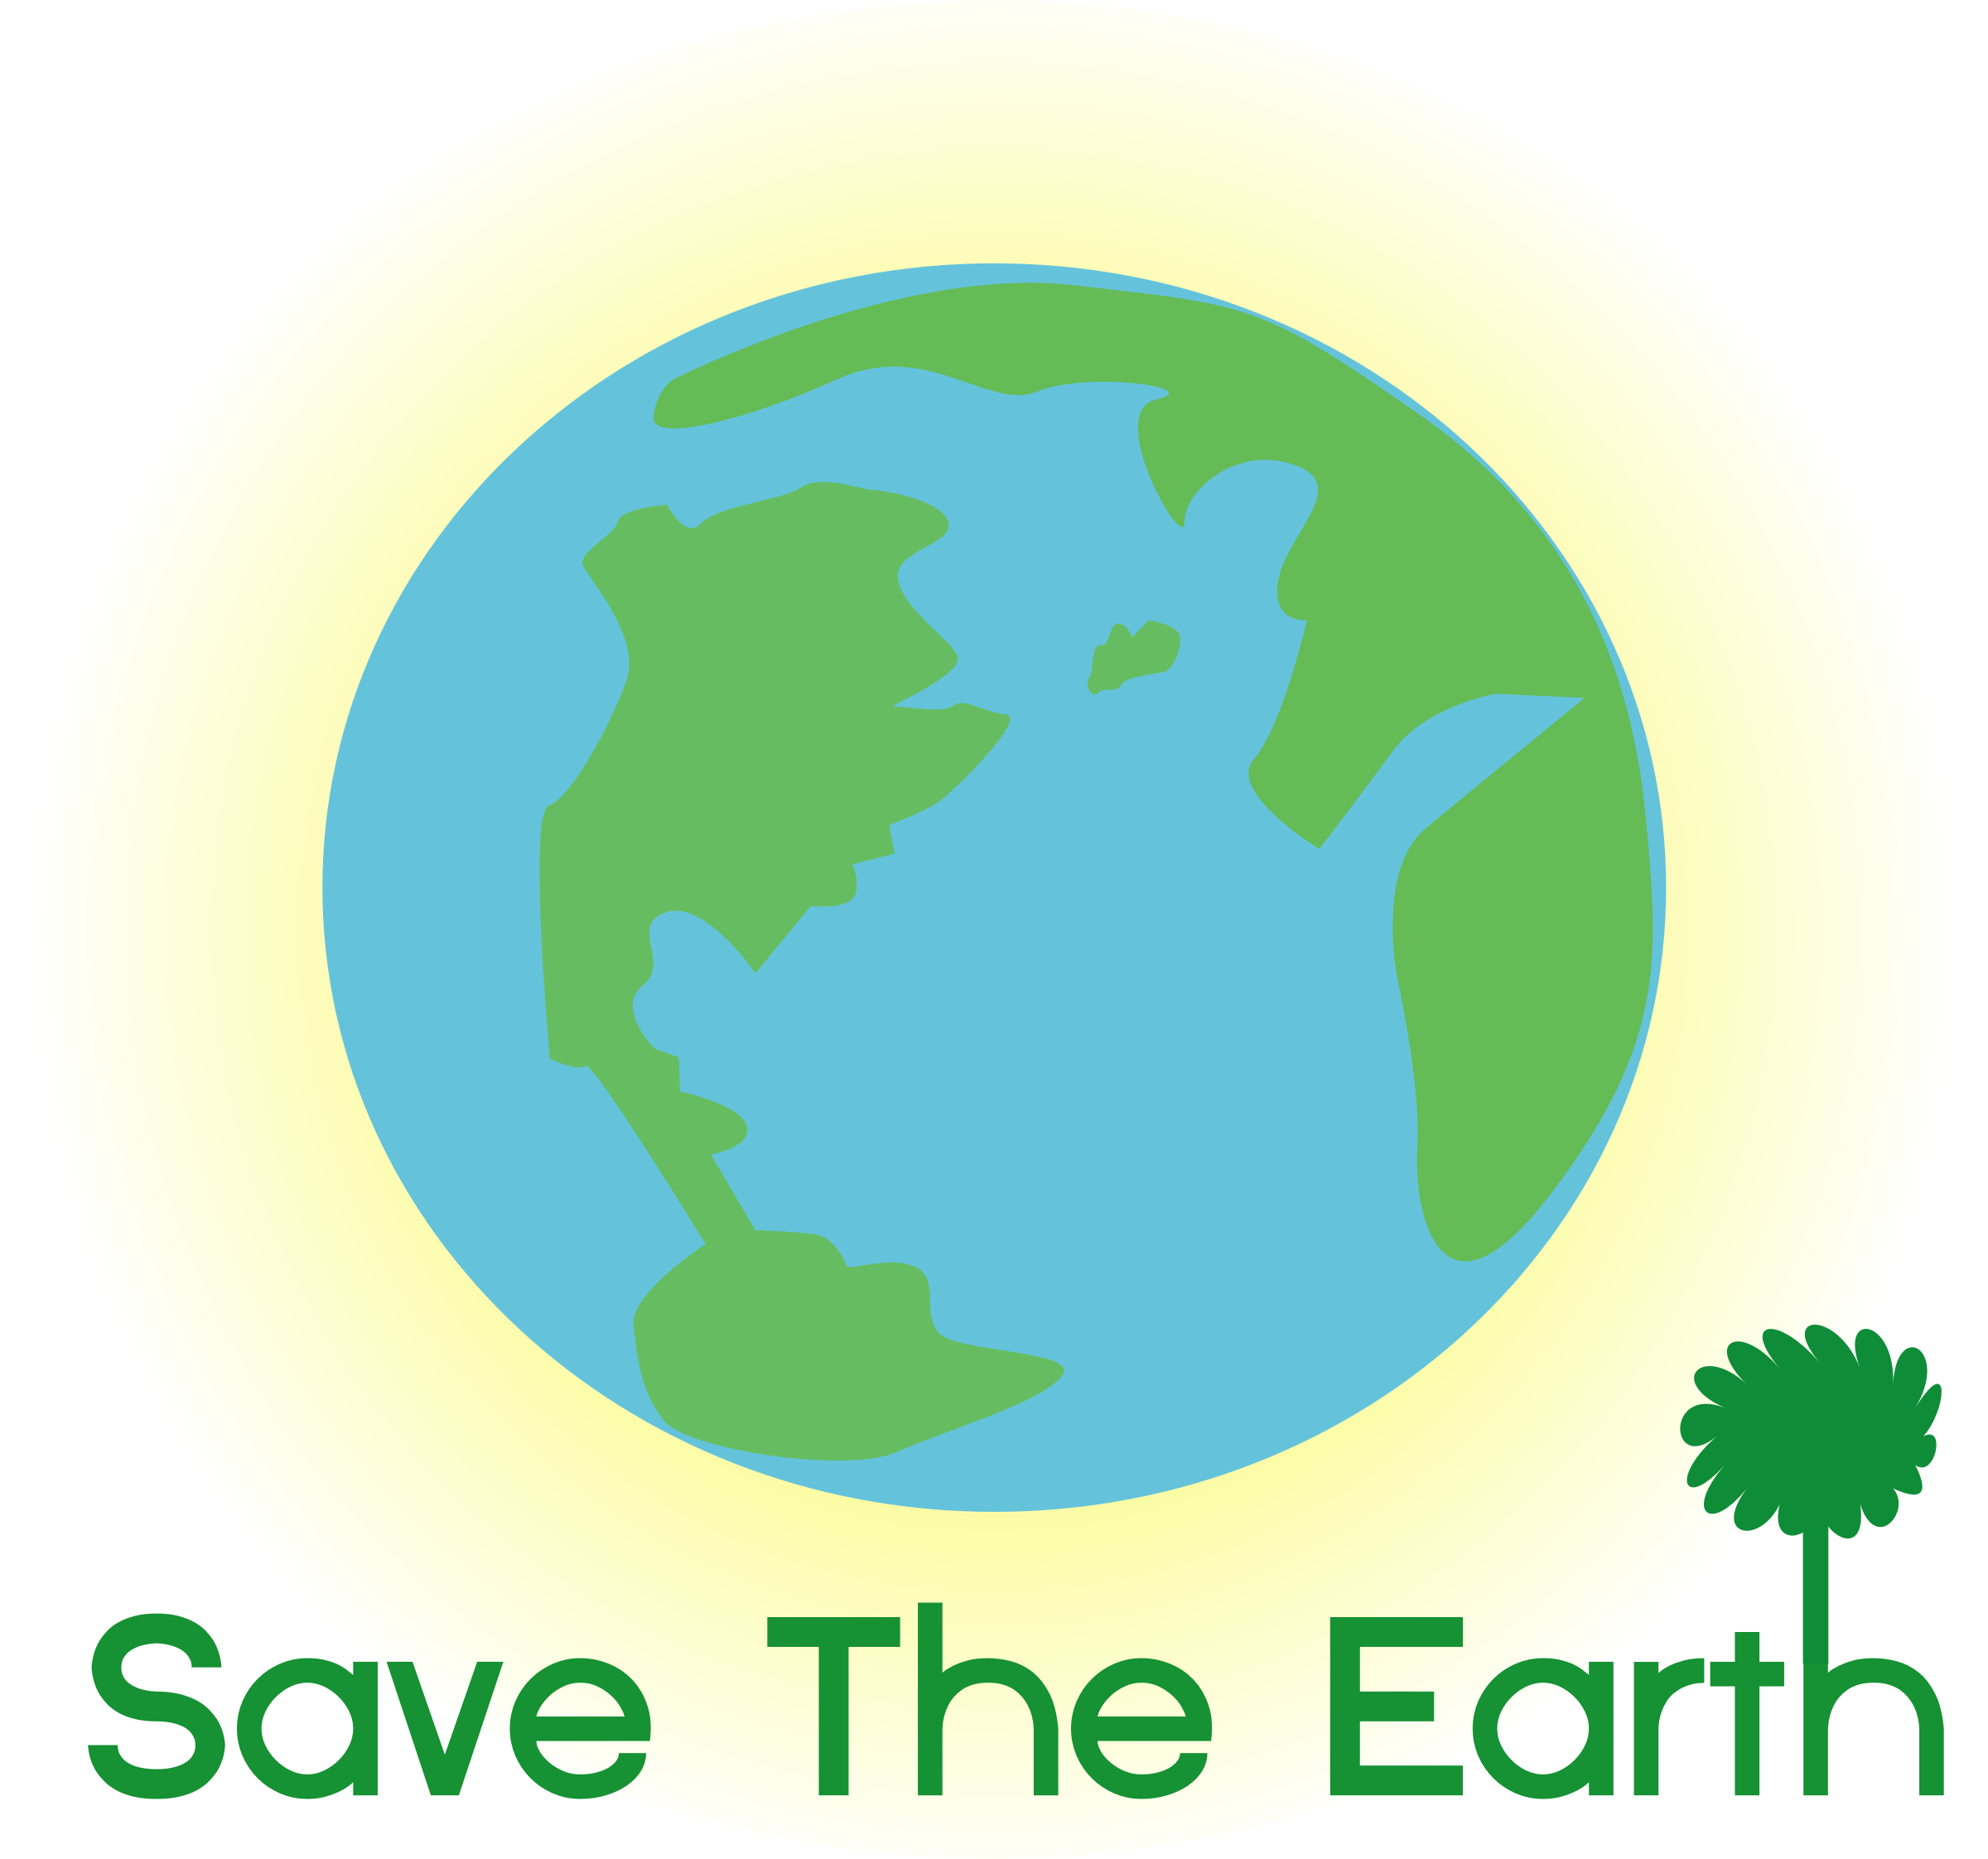 Save big image png. Clipart earth logo